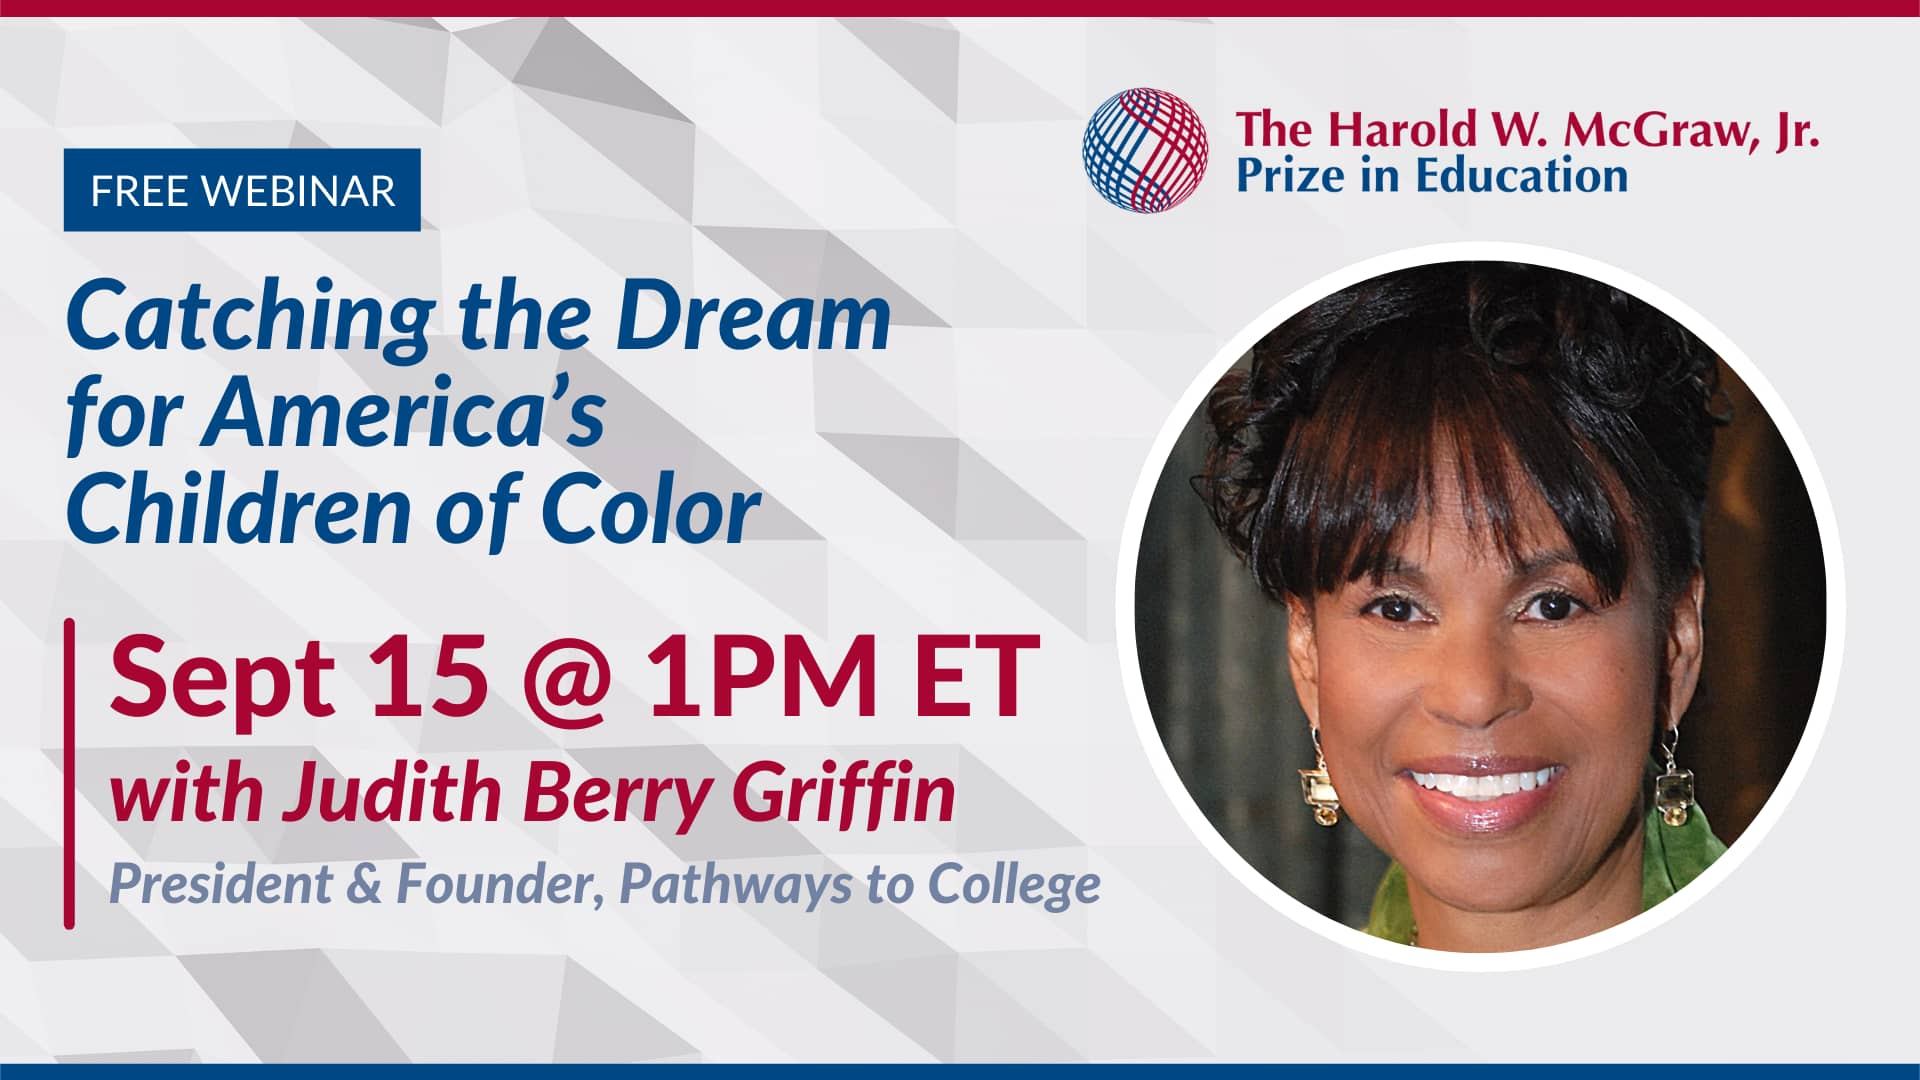 Play video: Catching the Dream for America's Children of Color